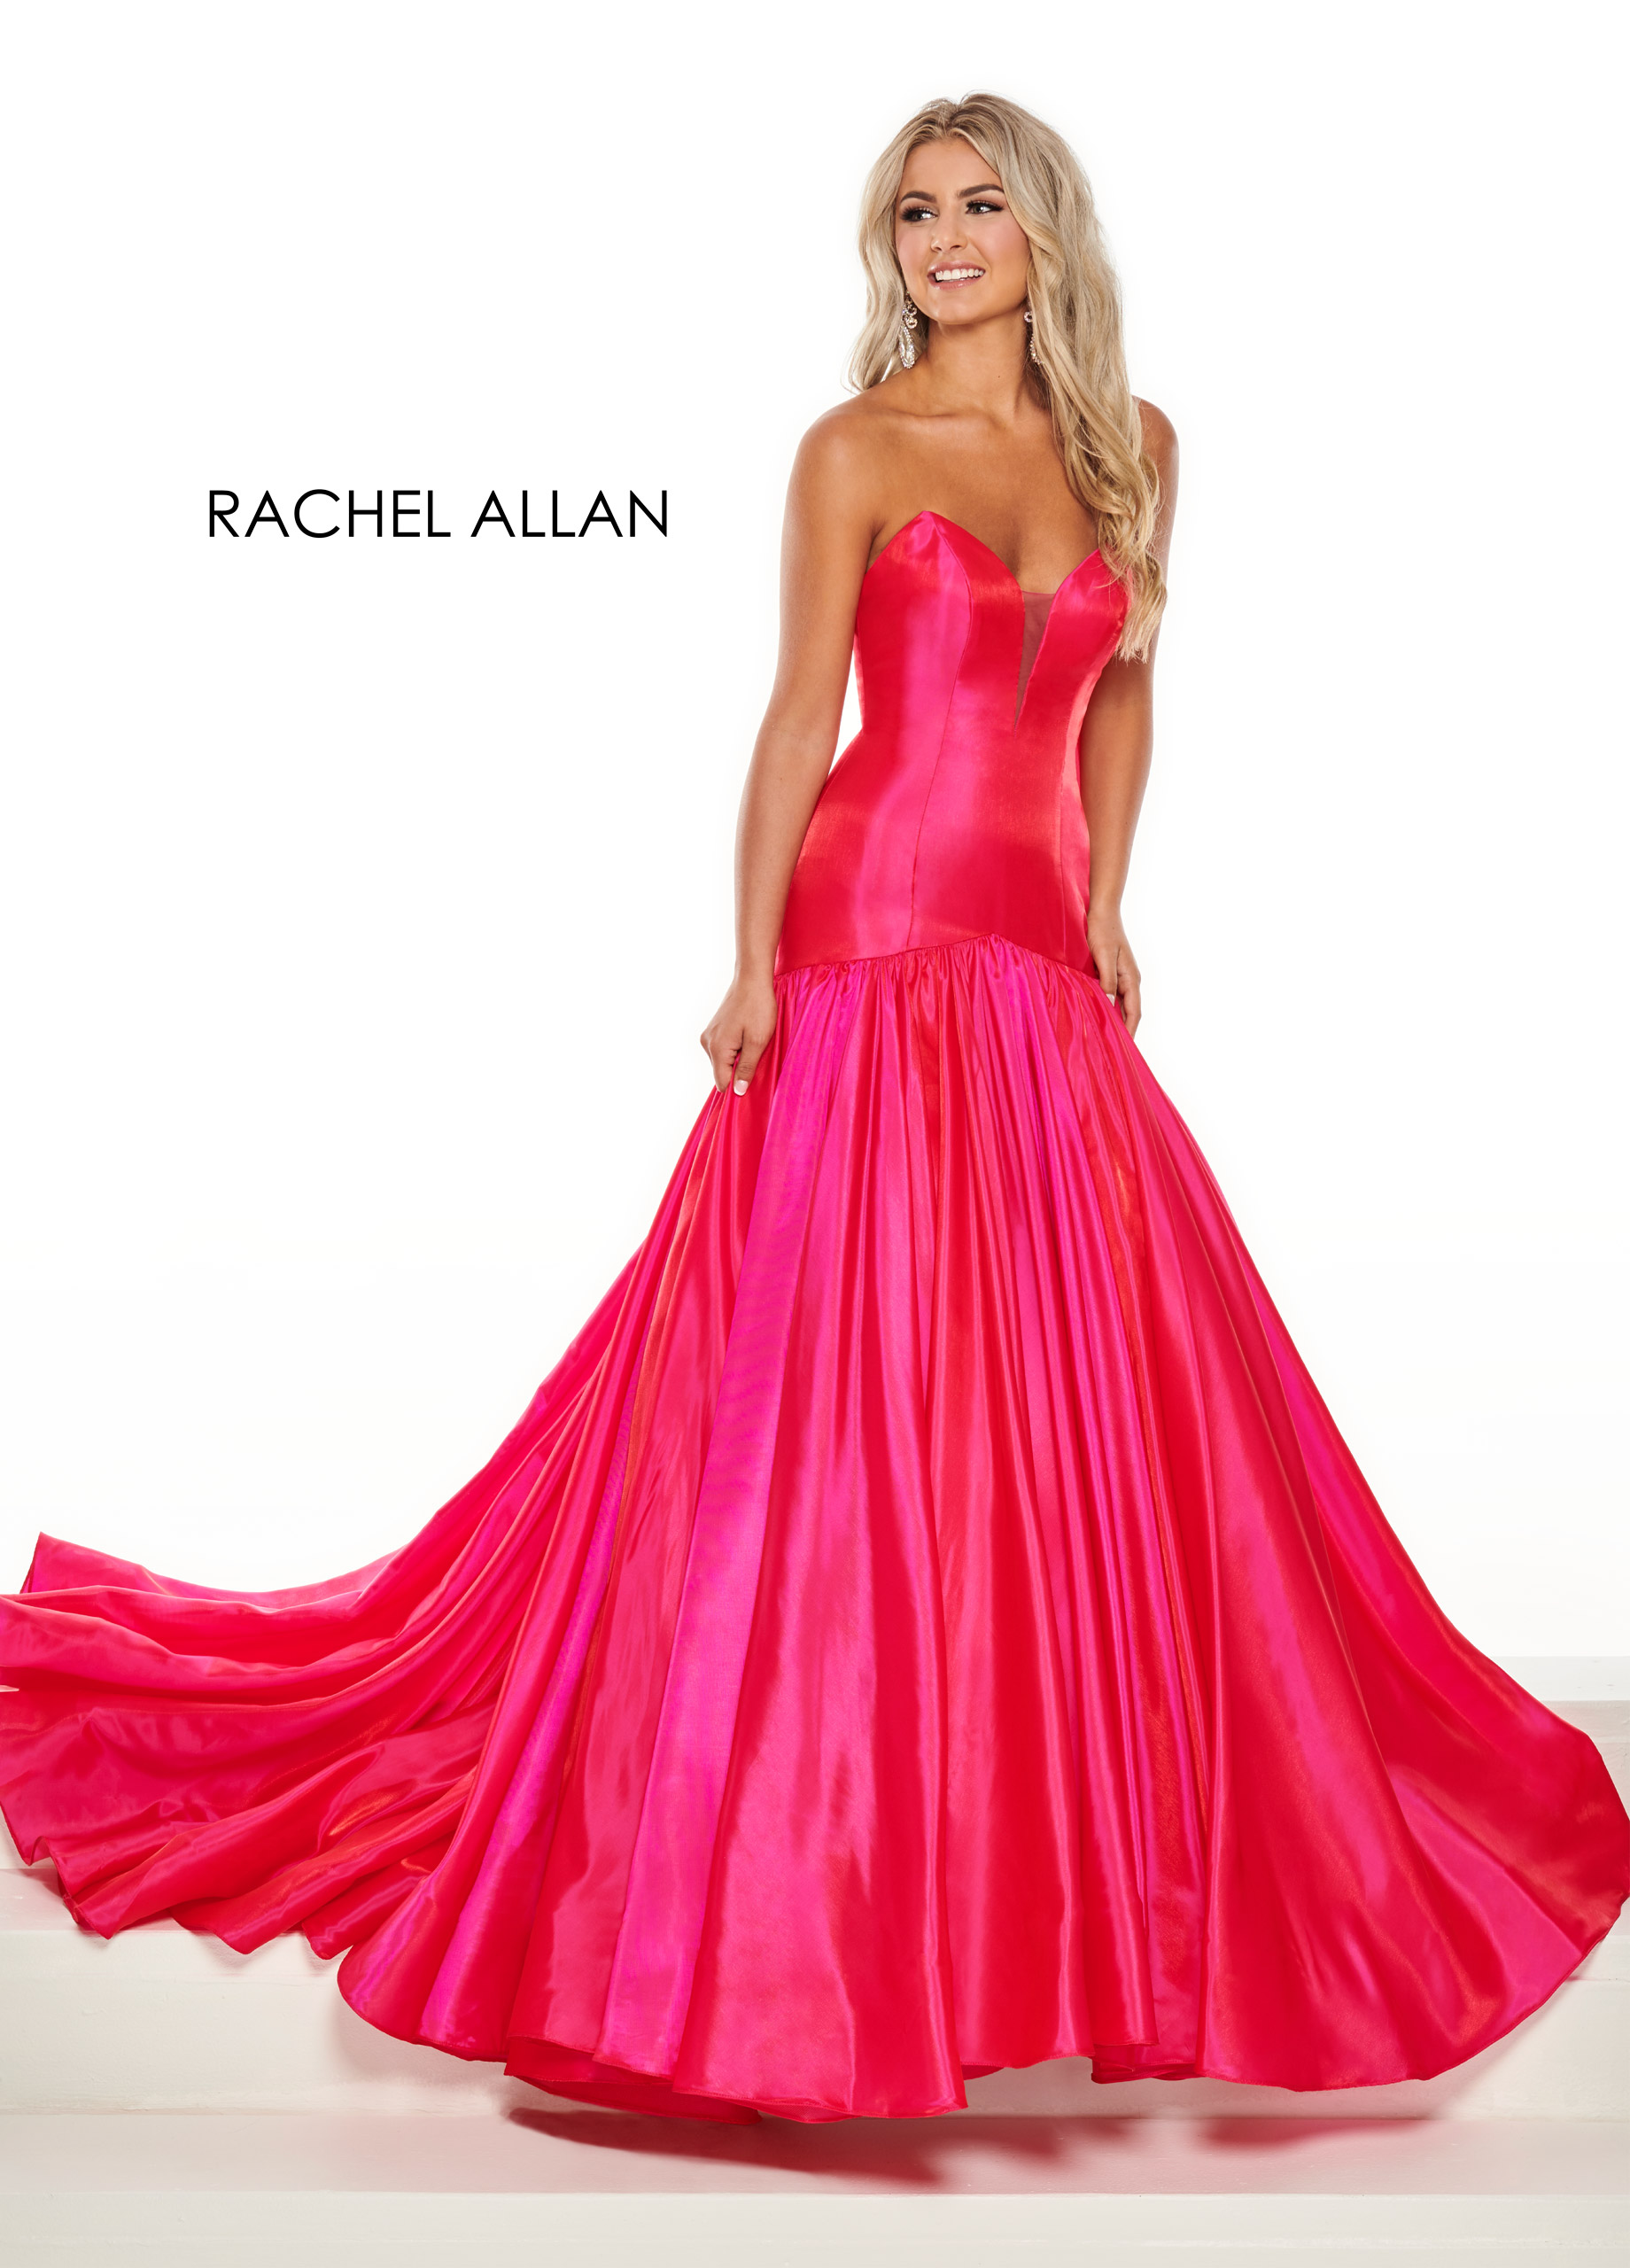 Strapless Drop Waist Pageant Dresses in Magenta Color